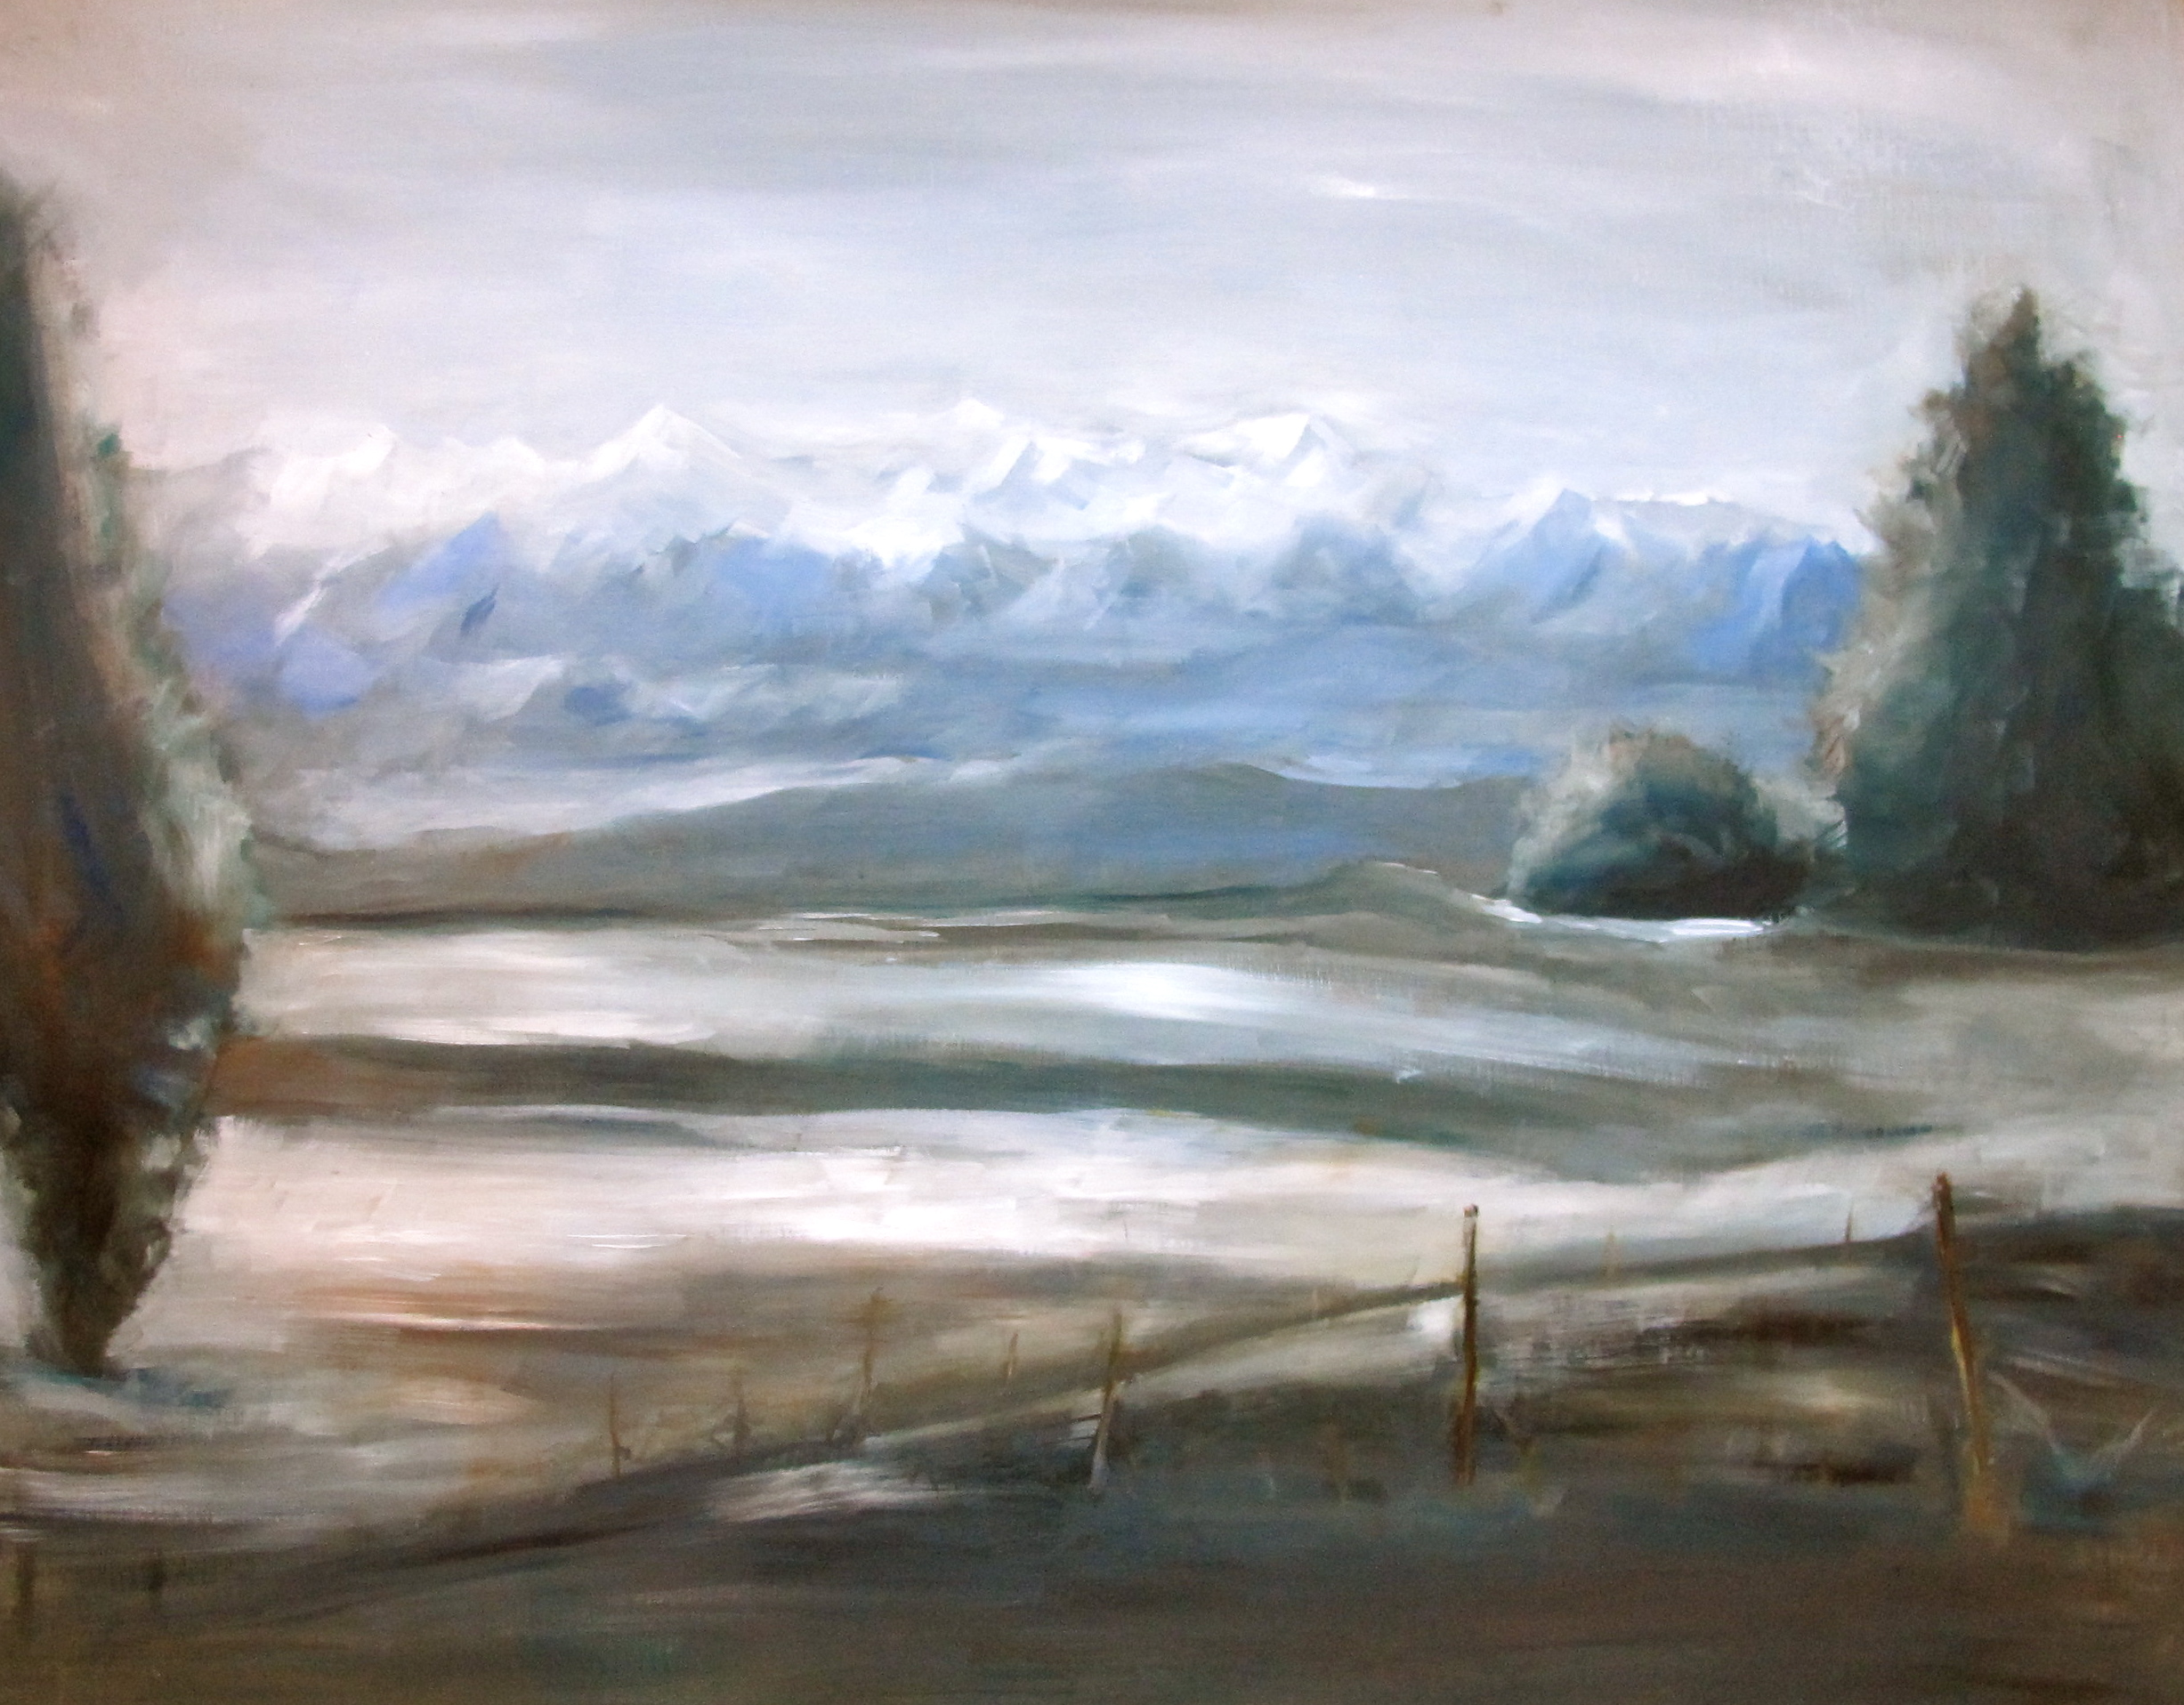 And finally, a painting my Mom did of winter in the vineyards.